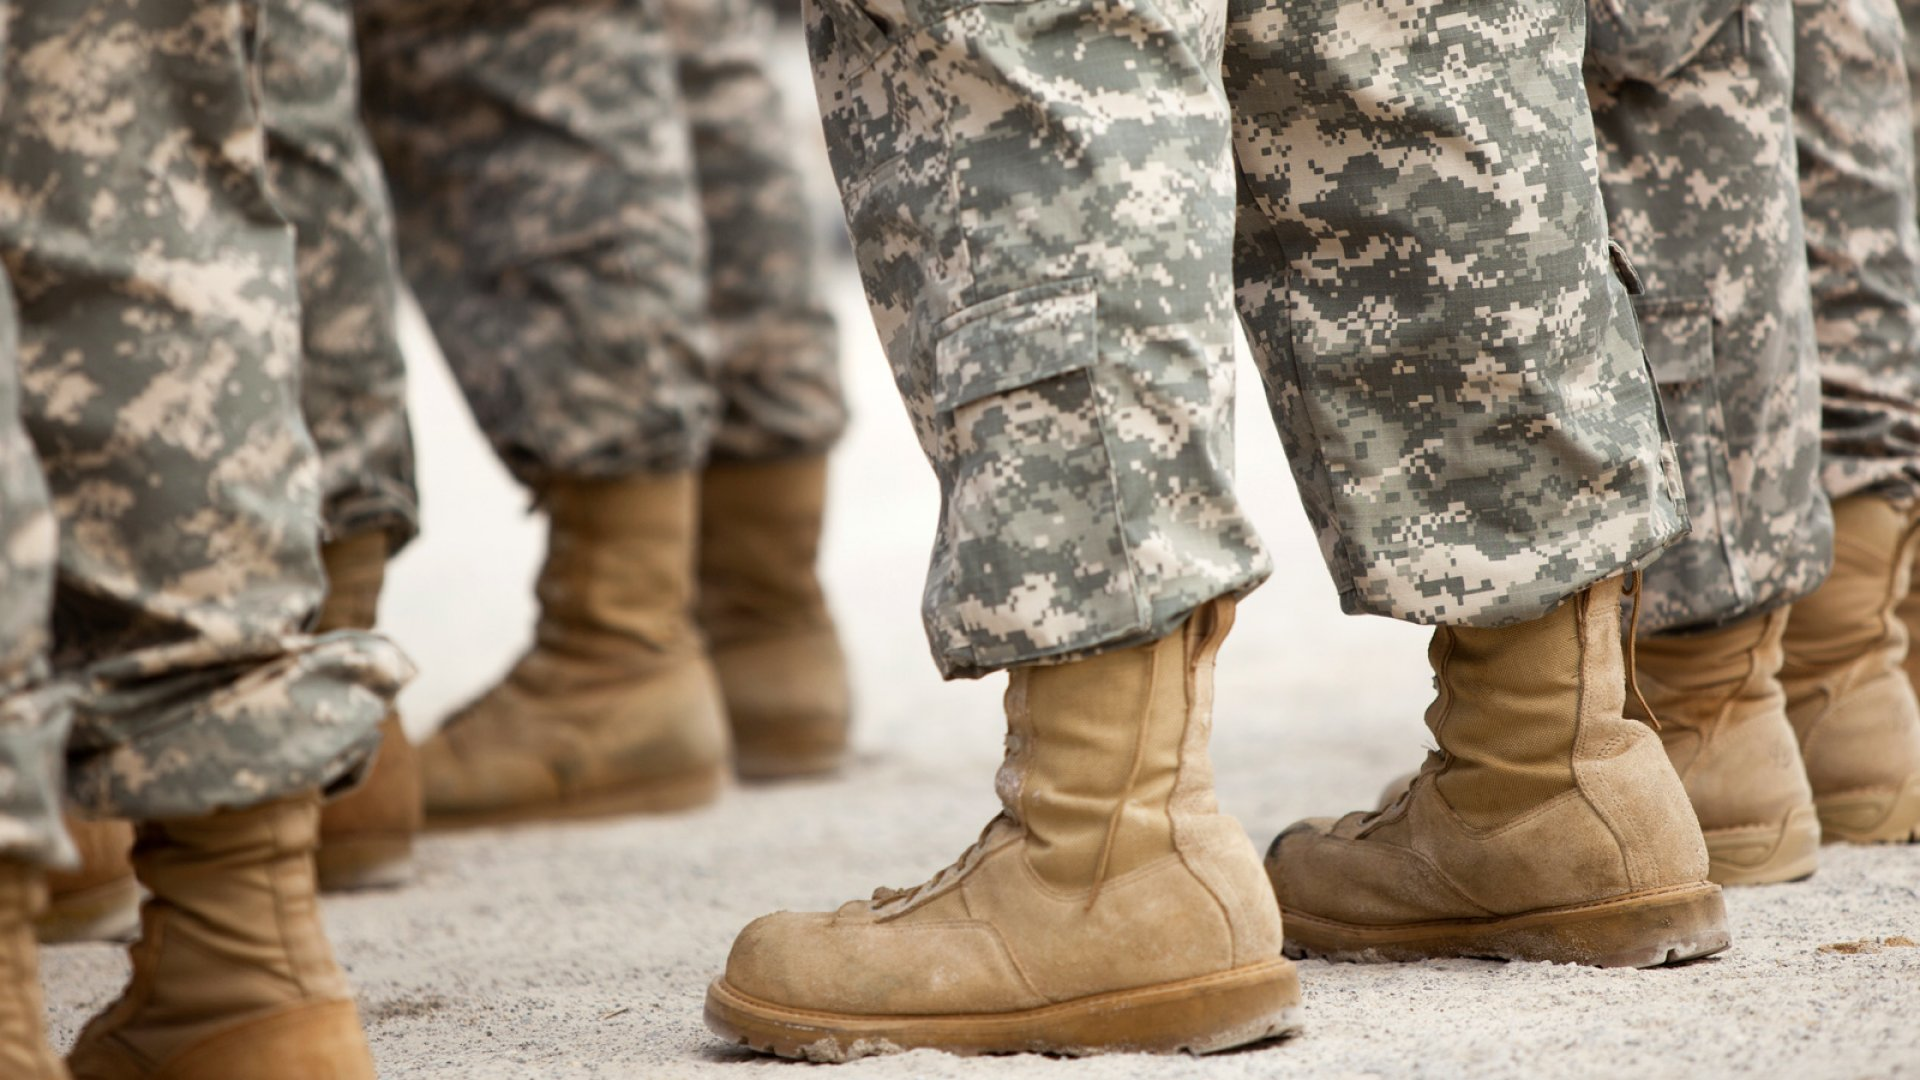 Veterans Make Great Entrepreneurs. Here's Why They Need More Support